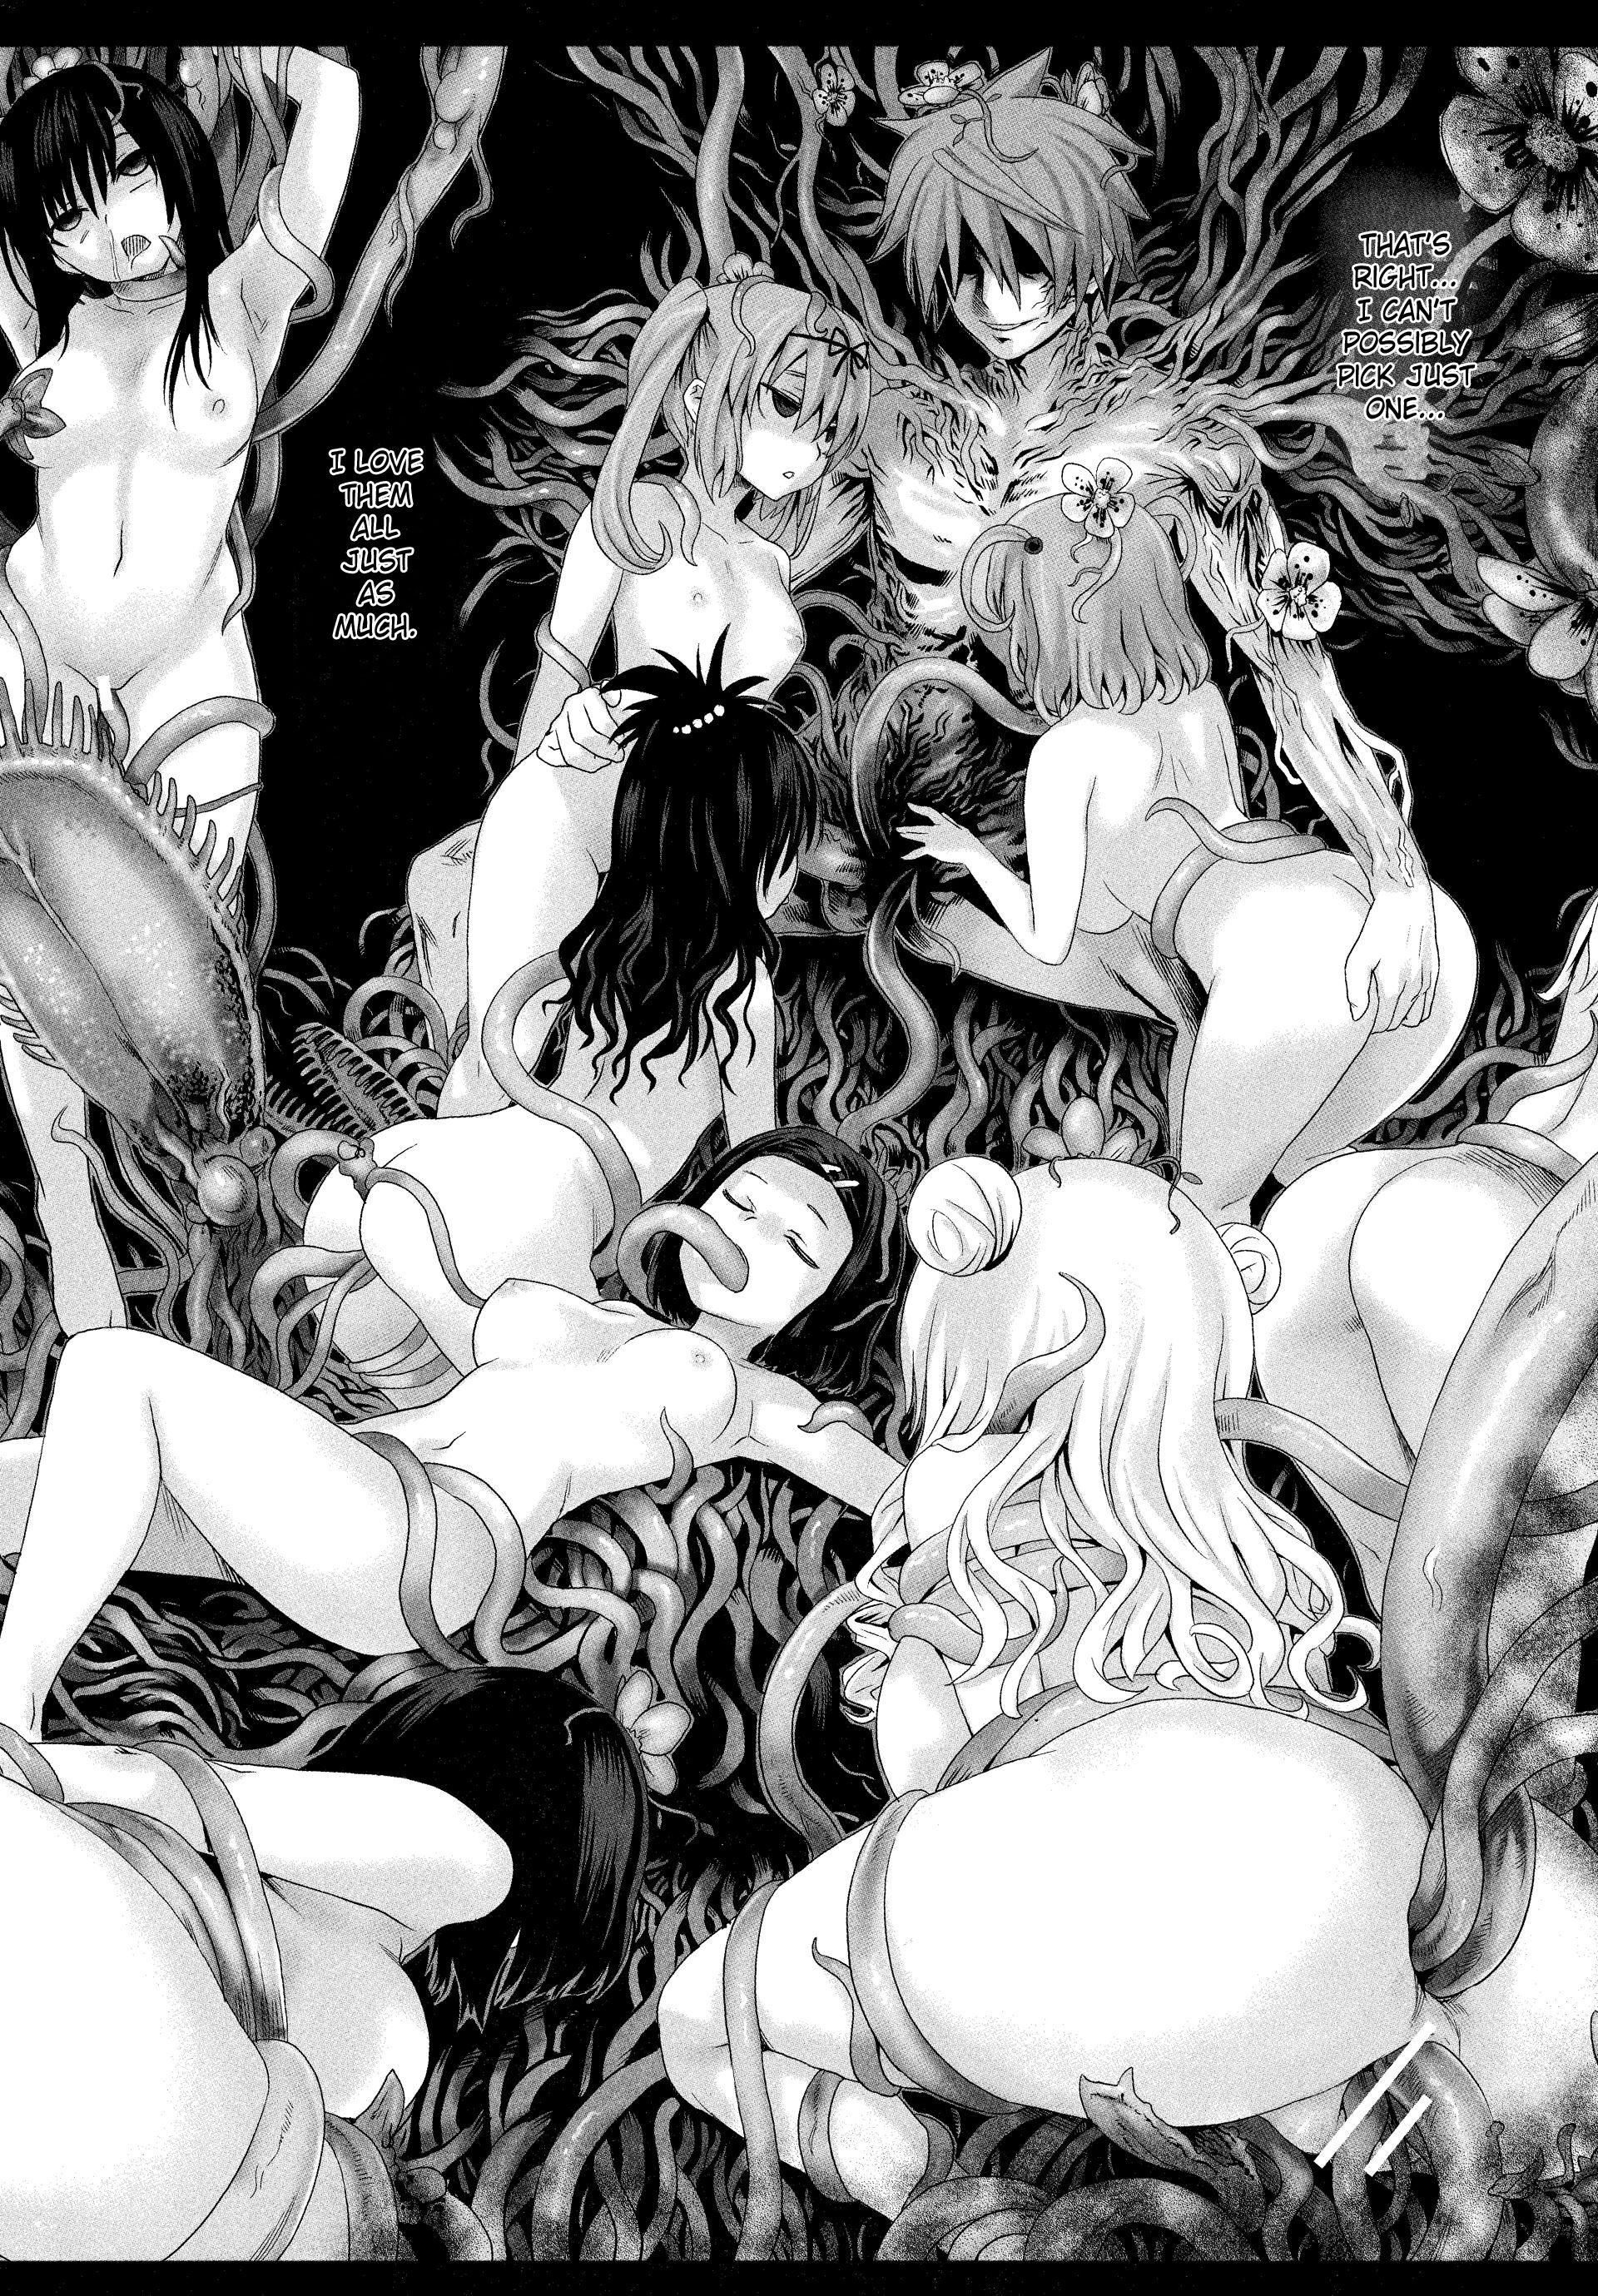 Fatal Pulse (Asanagi) - Victim Girls / Секс-рабыни из фентези [Ptcen] [ENG,JAP] Manga Hentai